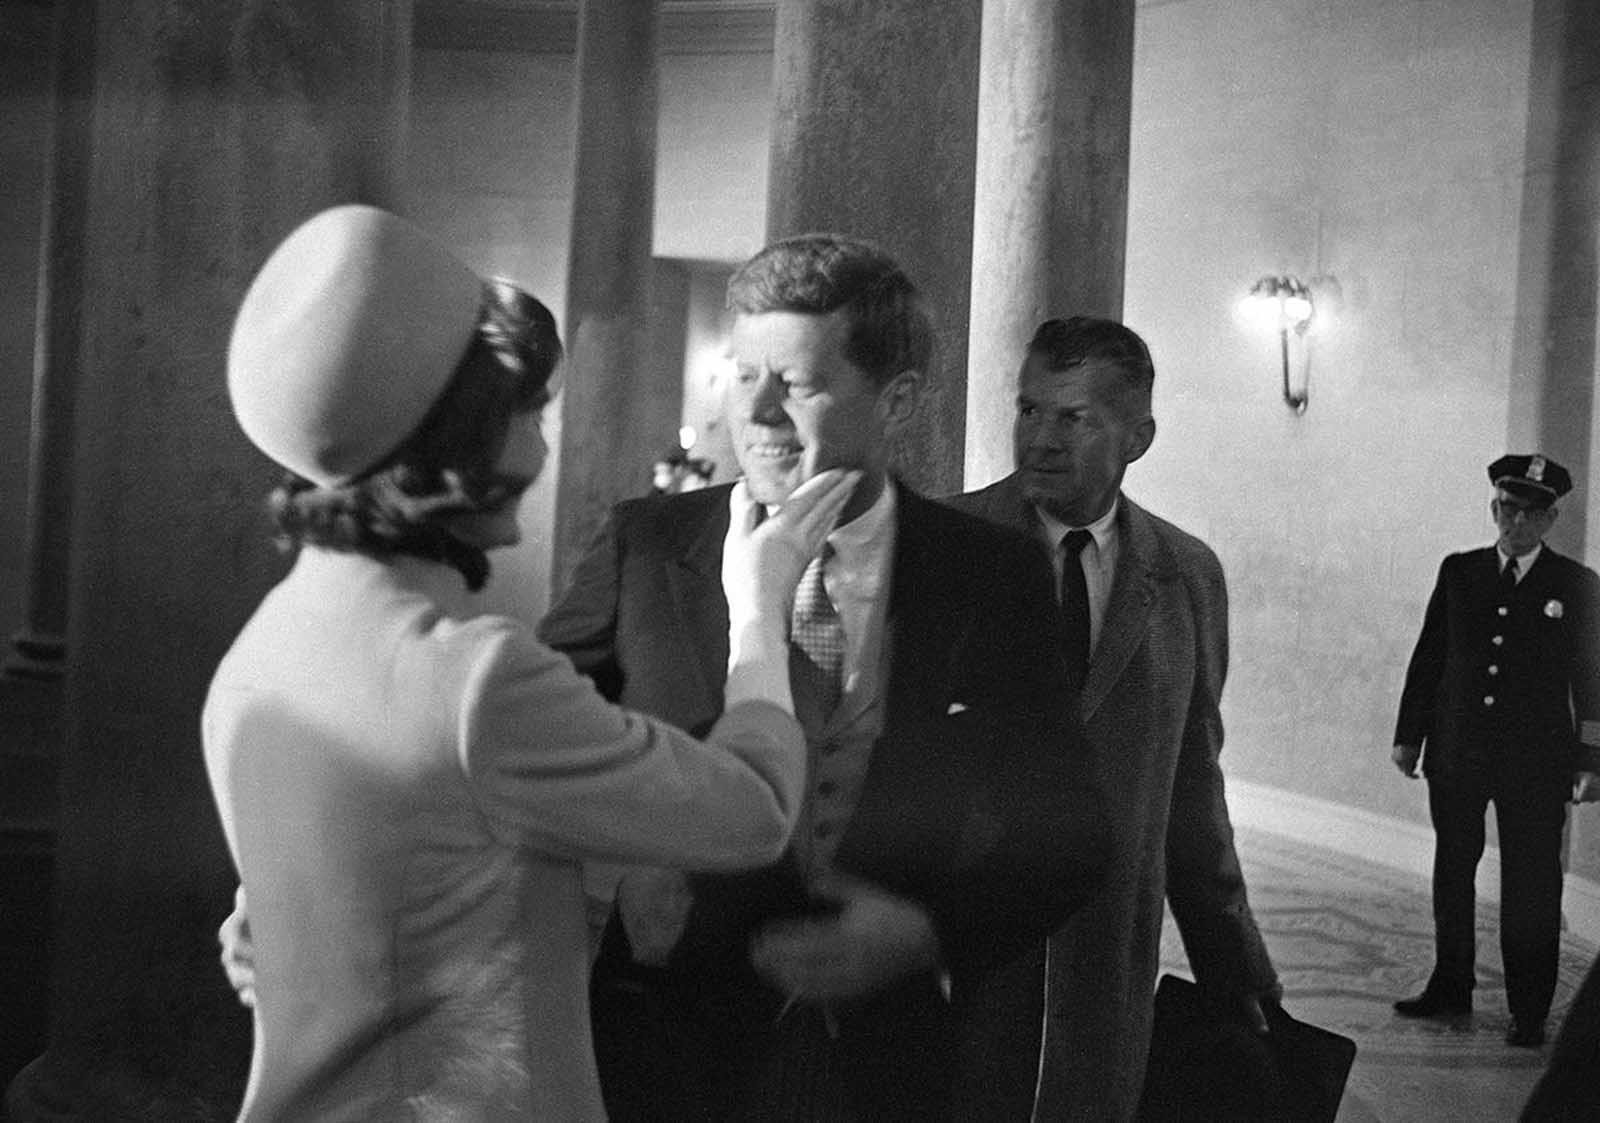 Mrs. Jacqueline Kennedy has a chuck under the chin for her husband moments after he became president, on January 20, 1961. This exclusive picture by AP photographer Henry Burroughs was taken in the rotunda of the Capitol just after President John F. Kennedy left the inaugural stand.